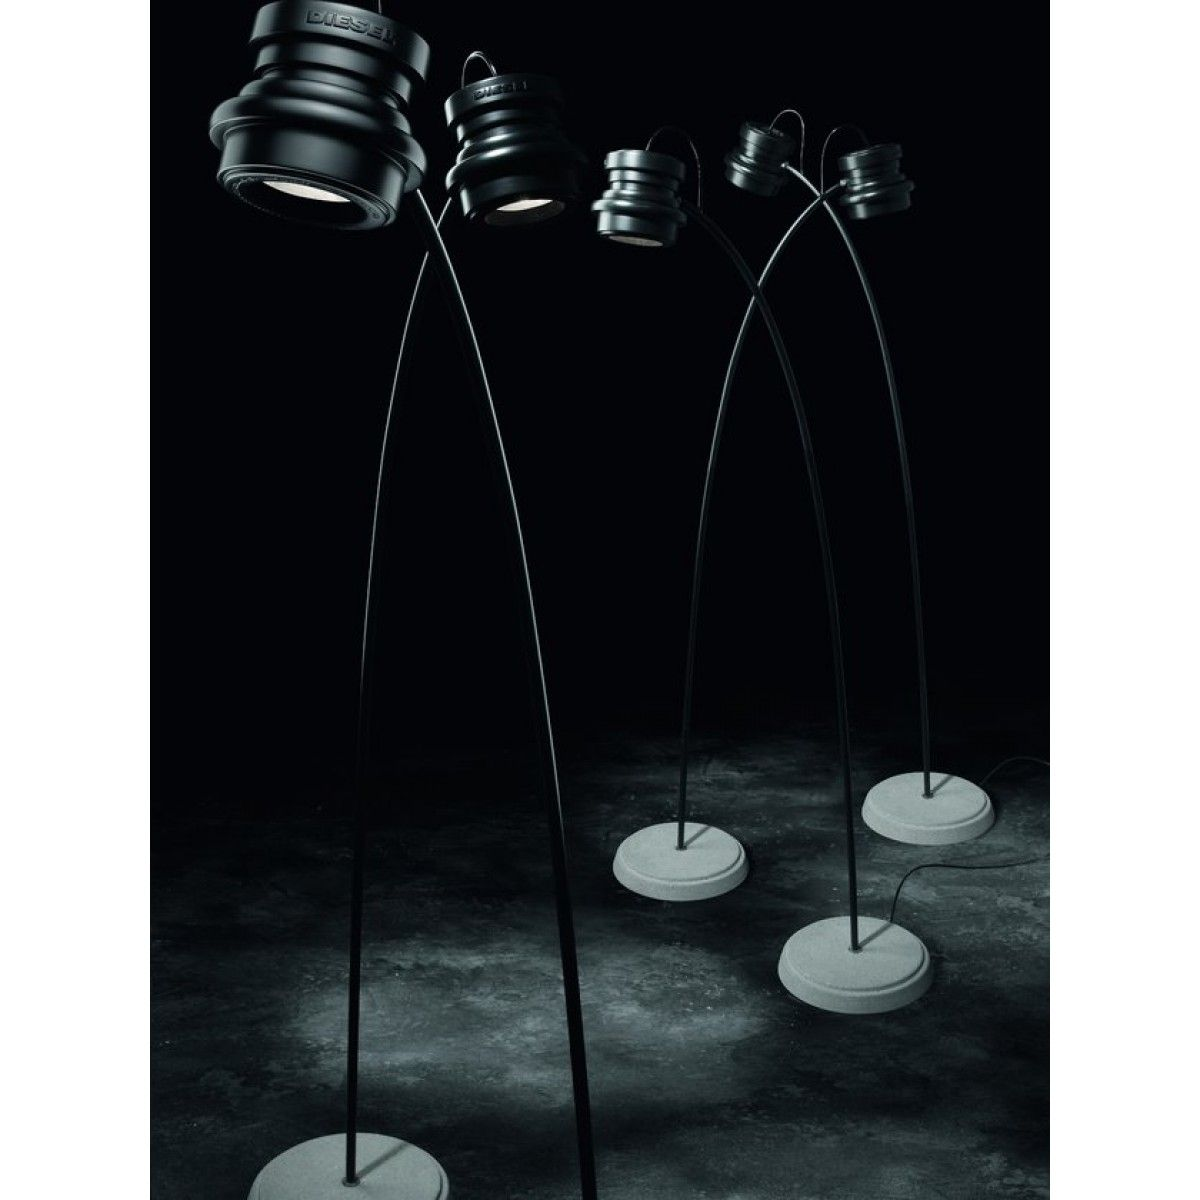 Explore Tall Lamps Diesel Online and more